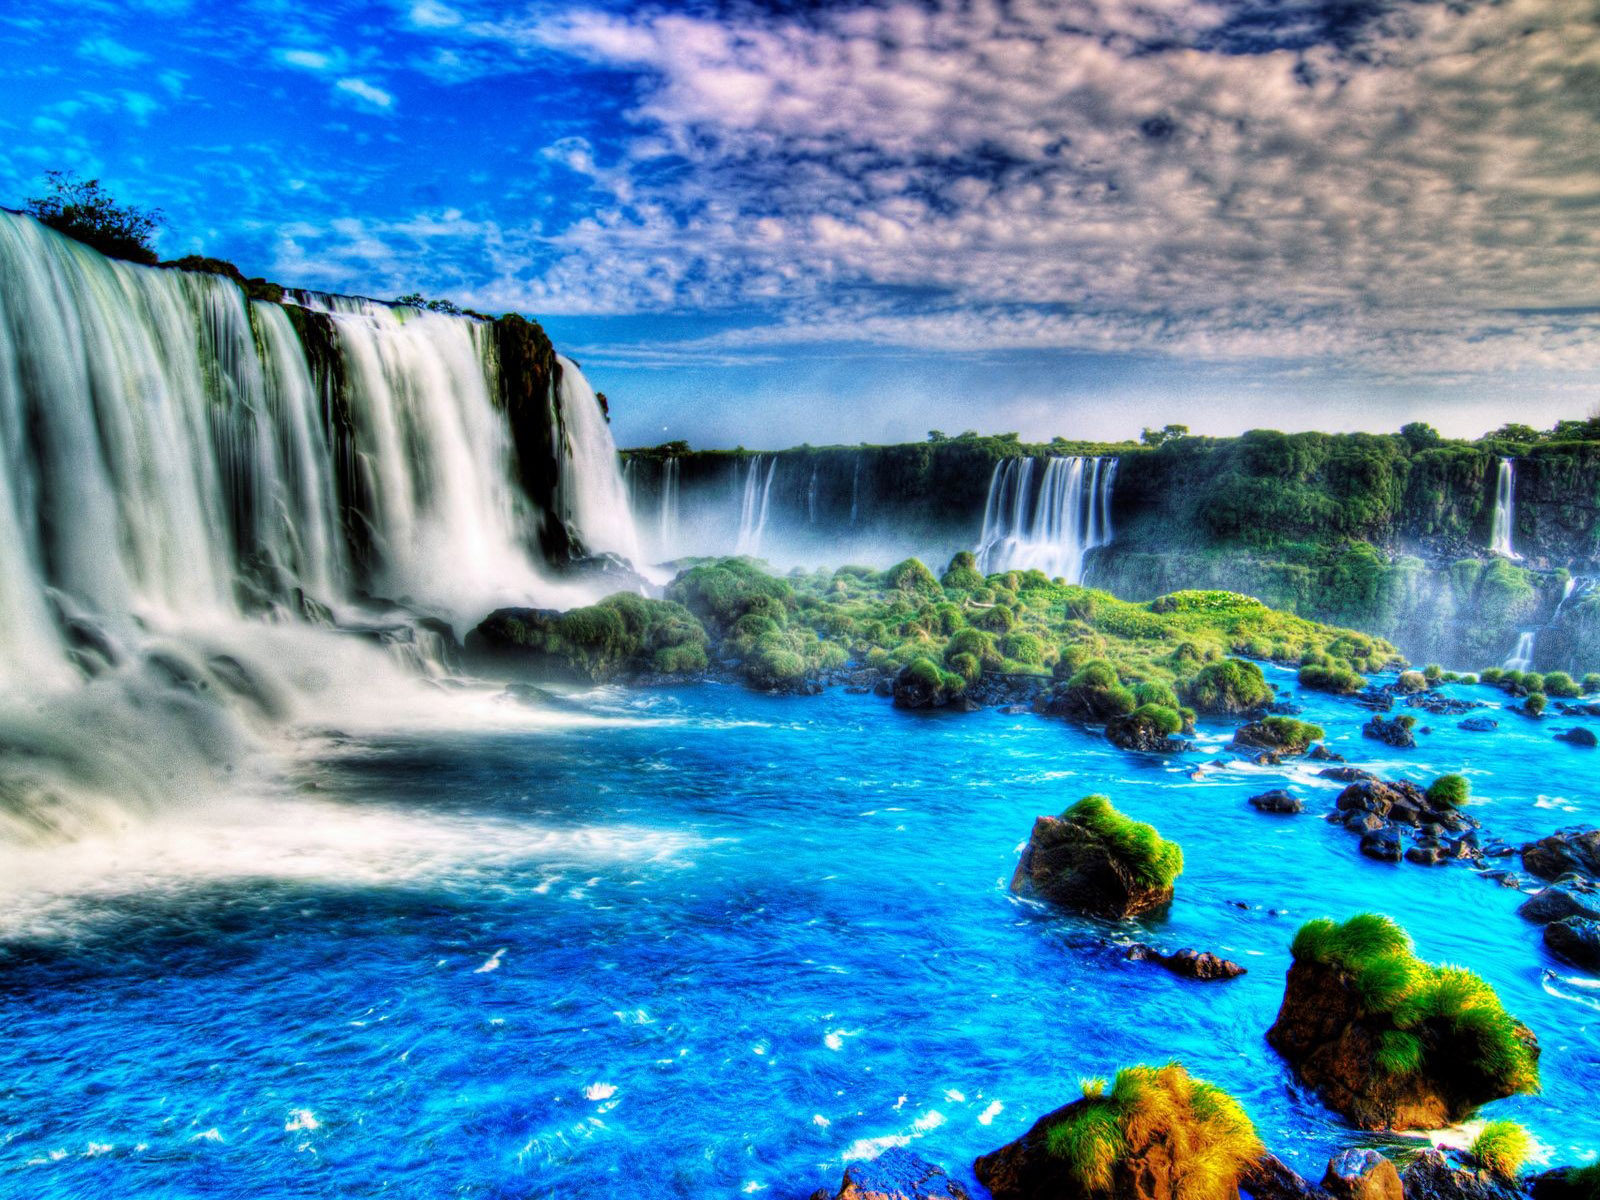 Pretty Fall Desktop Wallpaper Iguazu Falls Iguazu River On The Border Of The Argentine